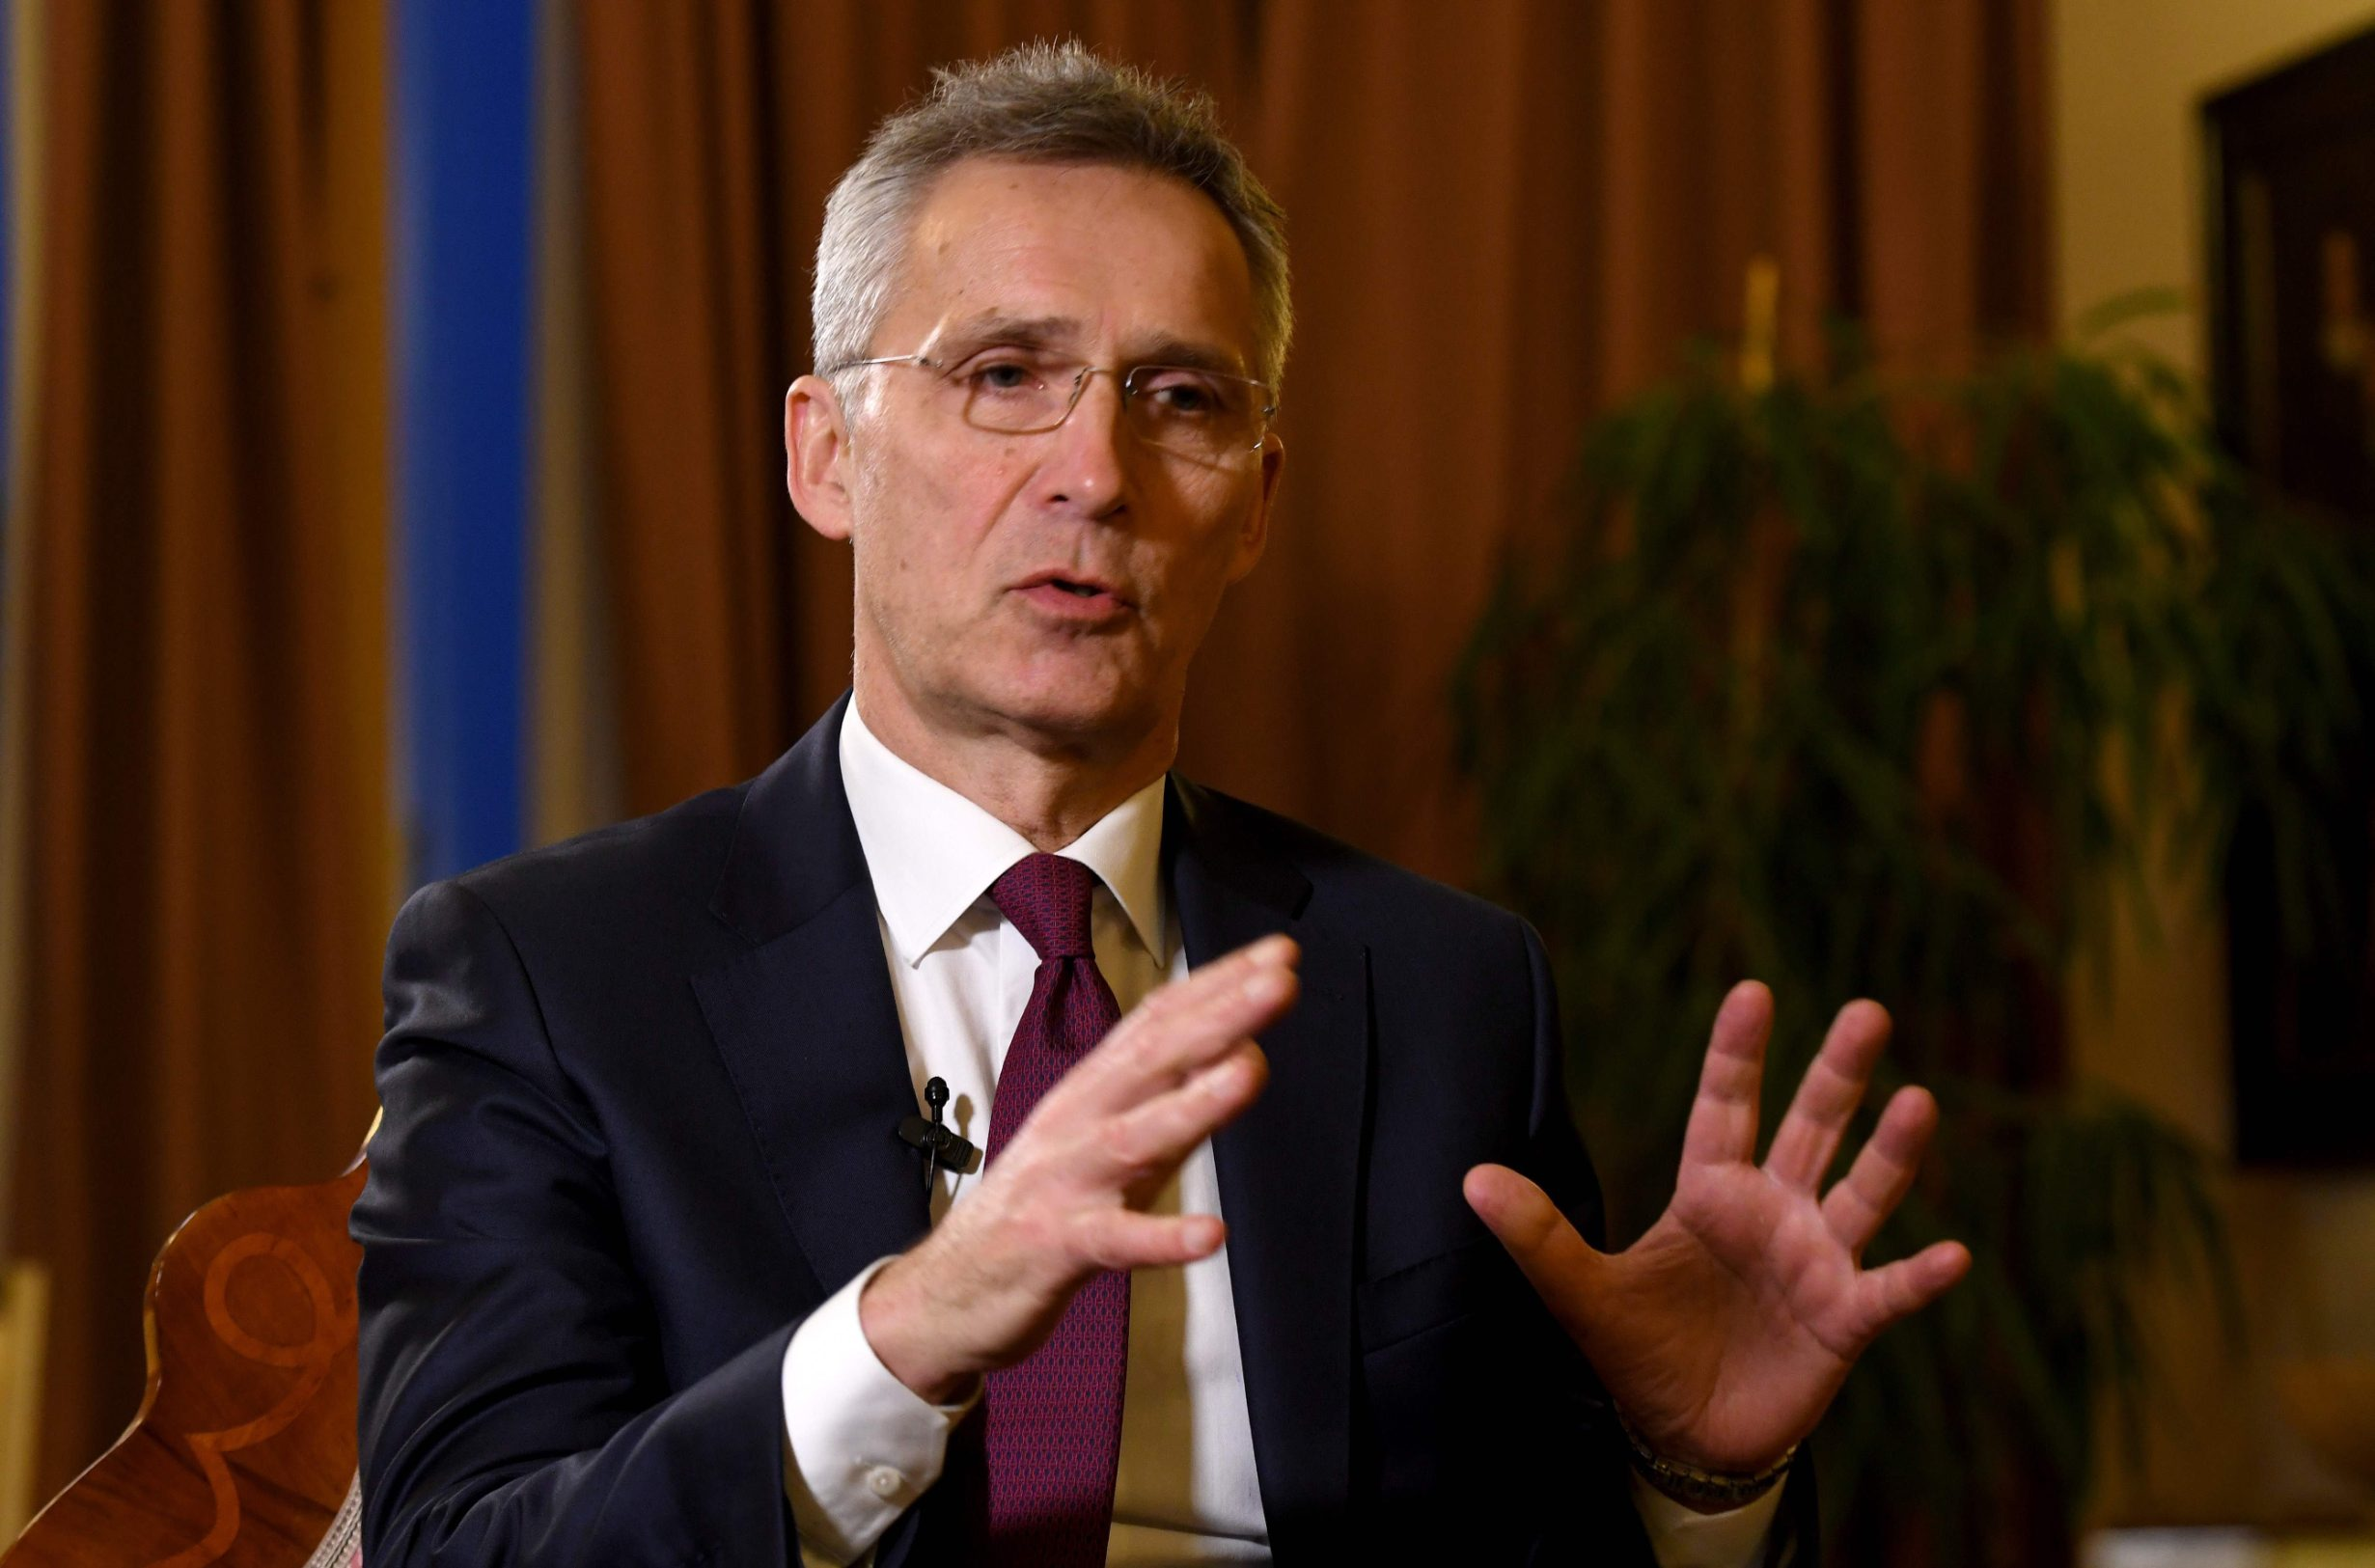 NATO Secretary General Jens Stoltenberg gives a statement following his meeting with Croatian President at the Presidential office in Zagreb, Croatia